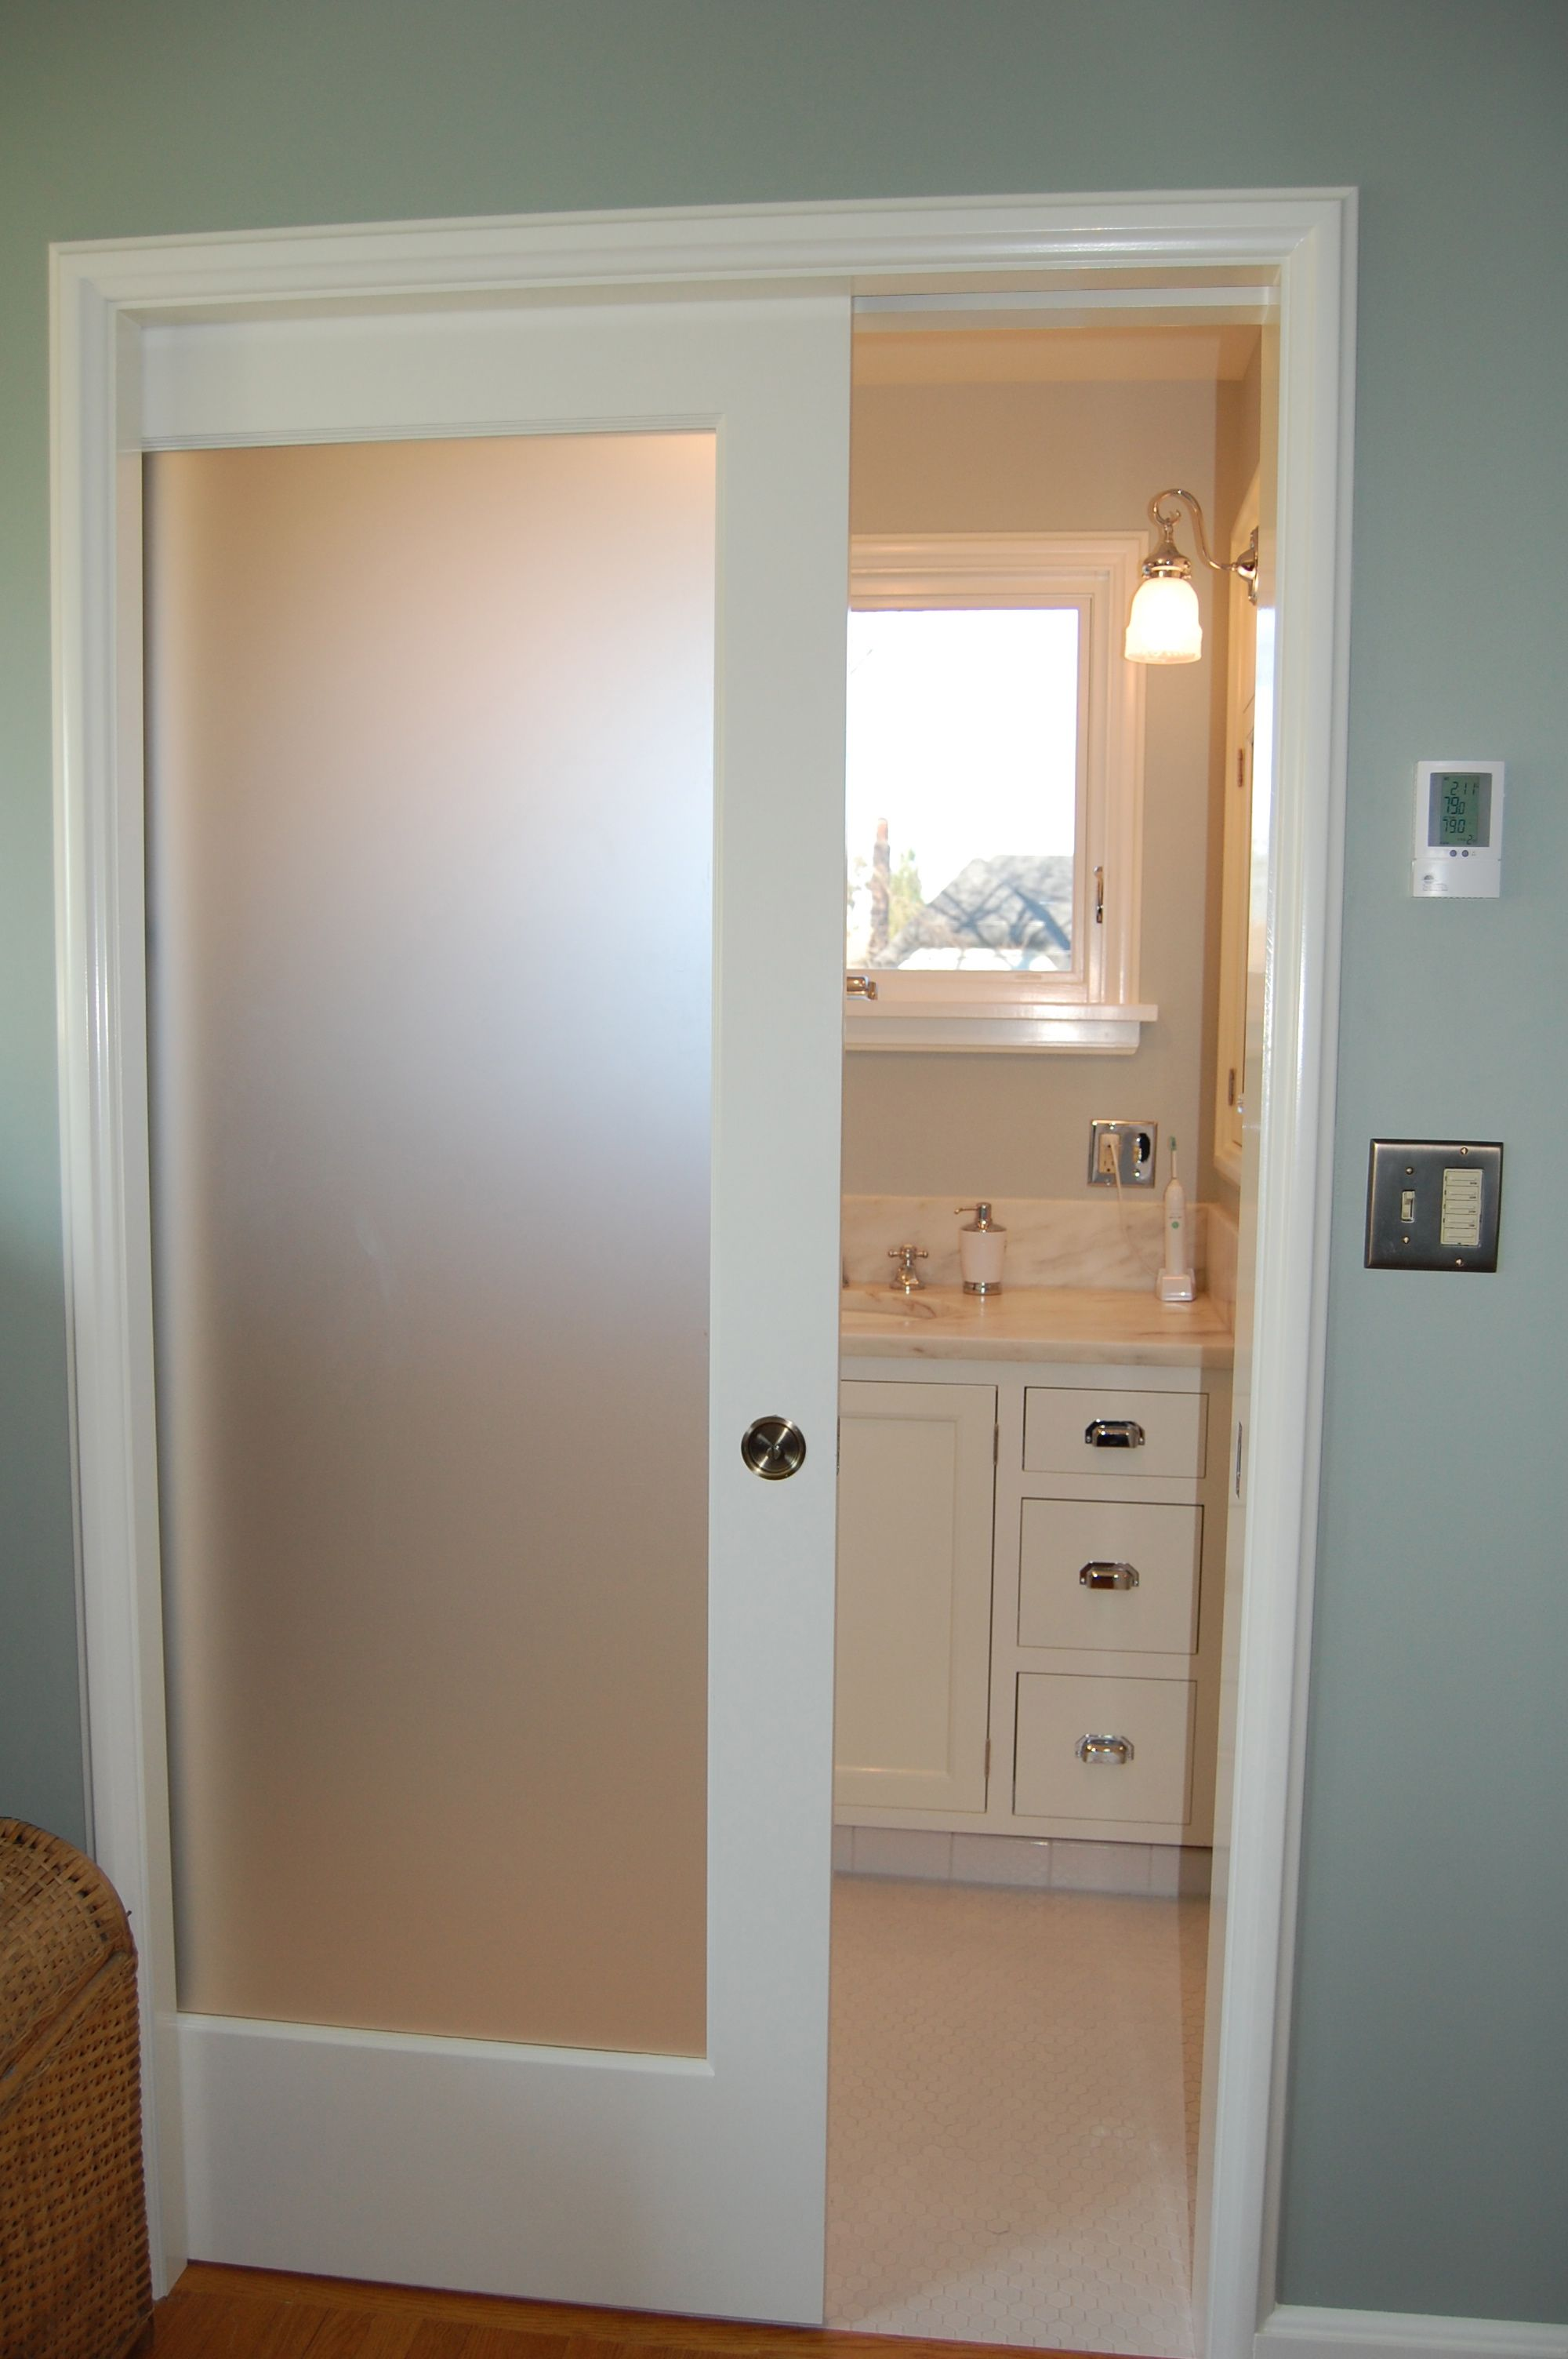 Pocket door bathroom lock - Alameda Remodel Is Complete